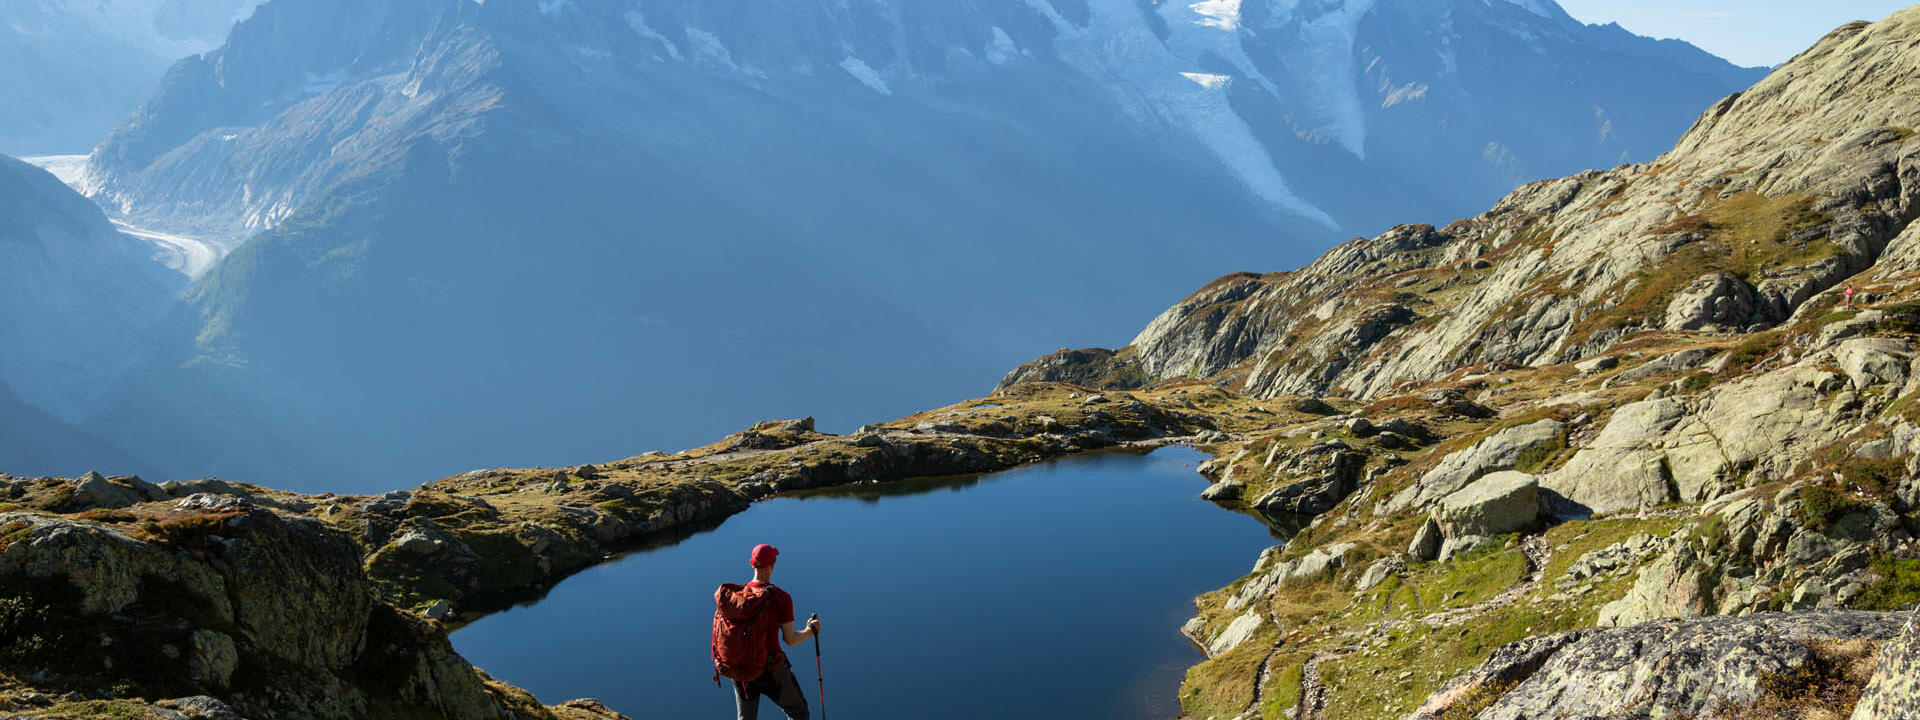 The best summer and winter activities in Mont Blanc